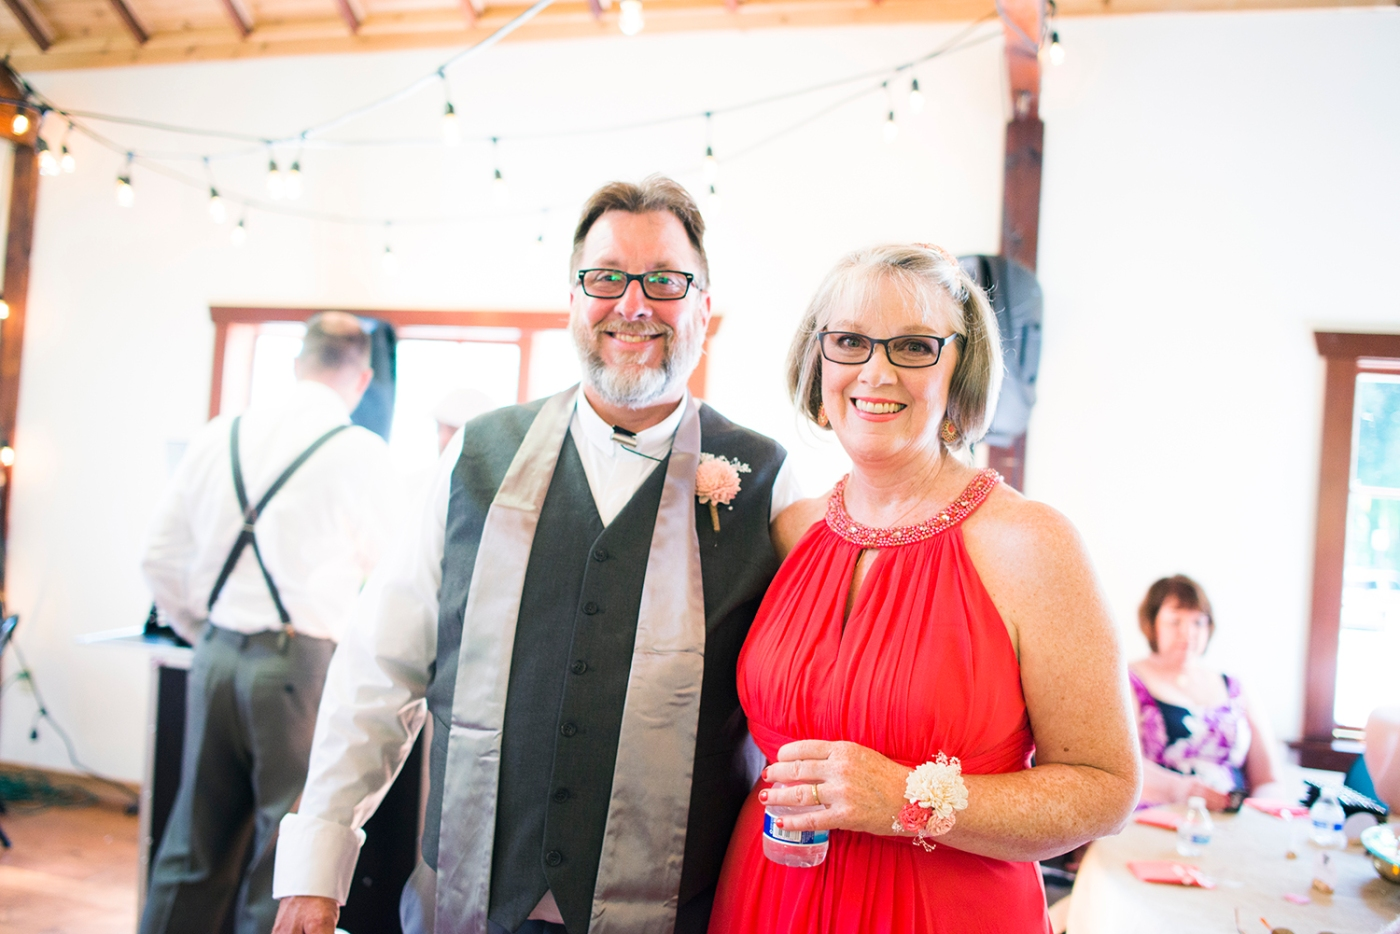 Jane_S_photography_Kadie_and_Steve_2016_Des_Moines_Marina_Wedding_DSC_1632